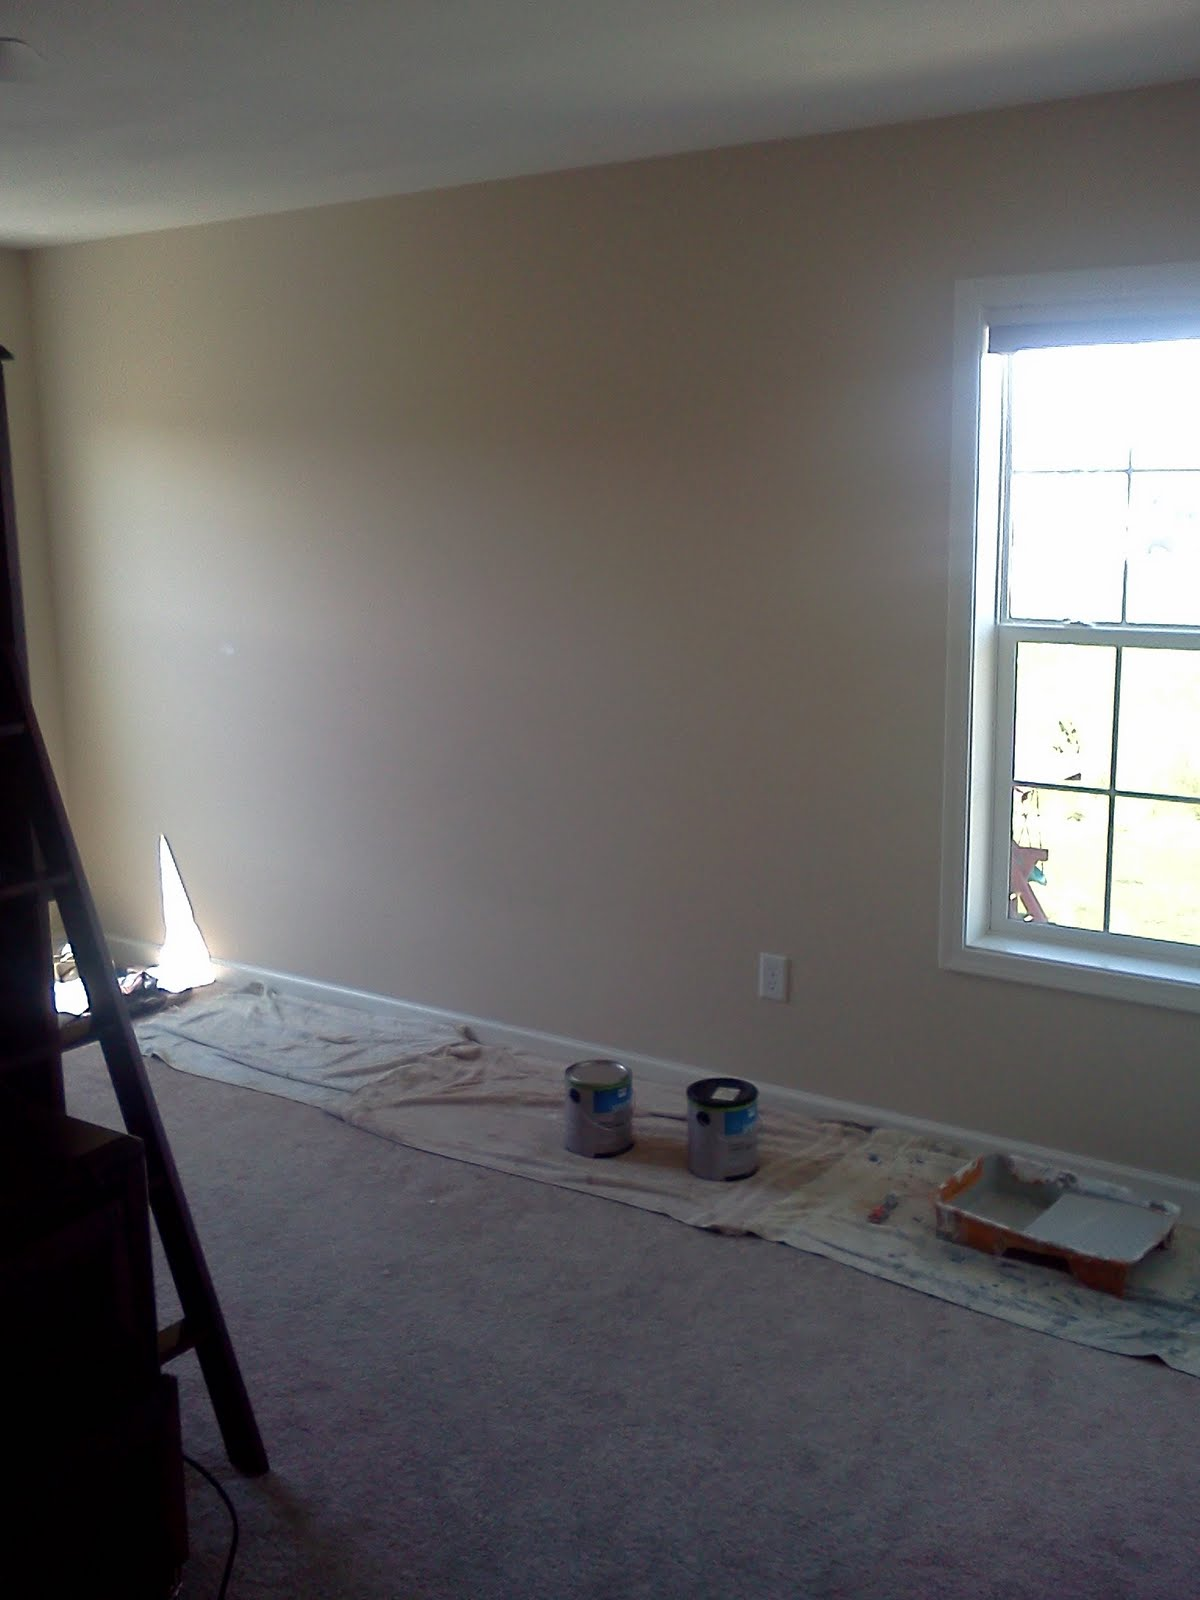 """We were contracted to paint this room for two really cute little guys who wanted a """"Yankee game room!"""" with lots of stripes. Well, as die hard Yankee's fans ..."""